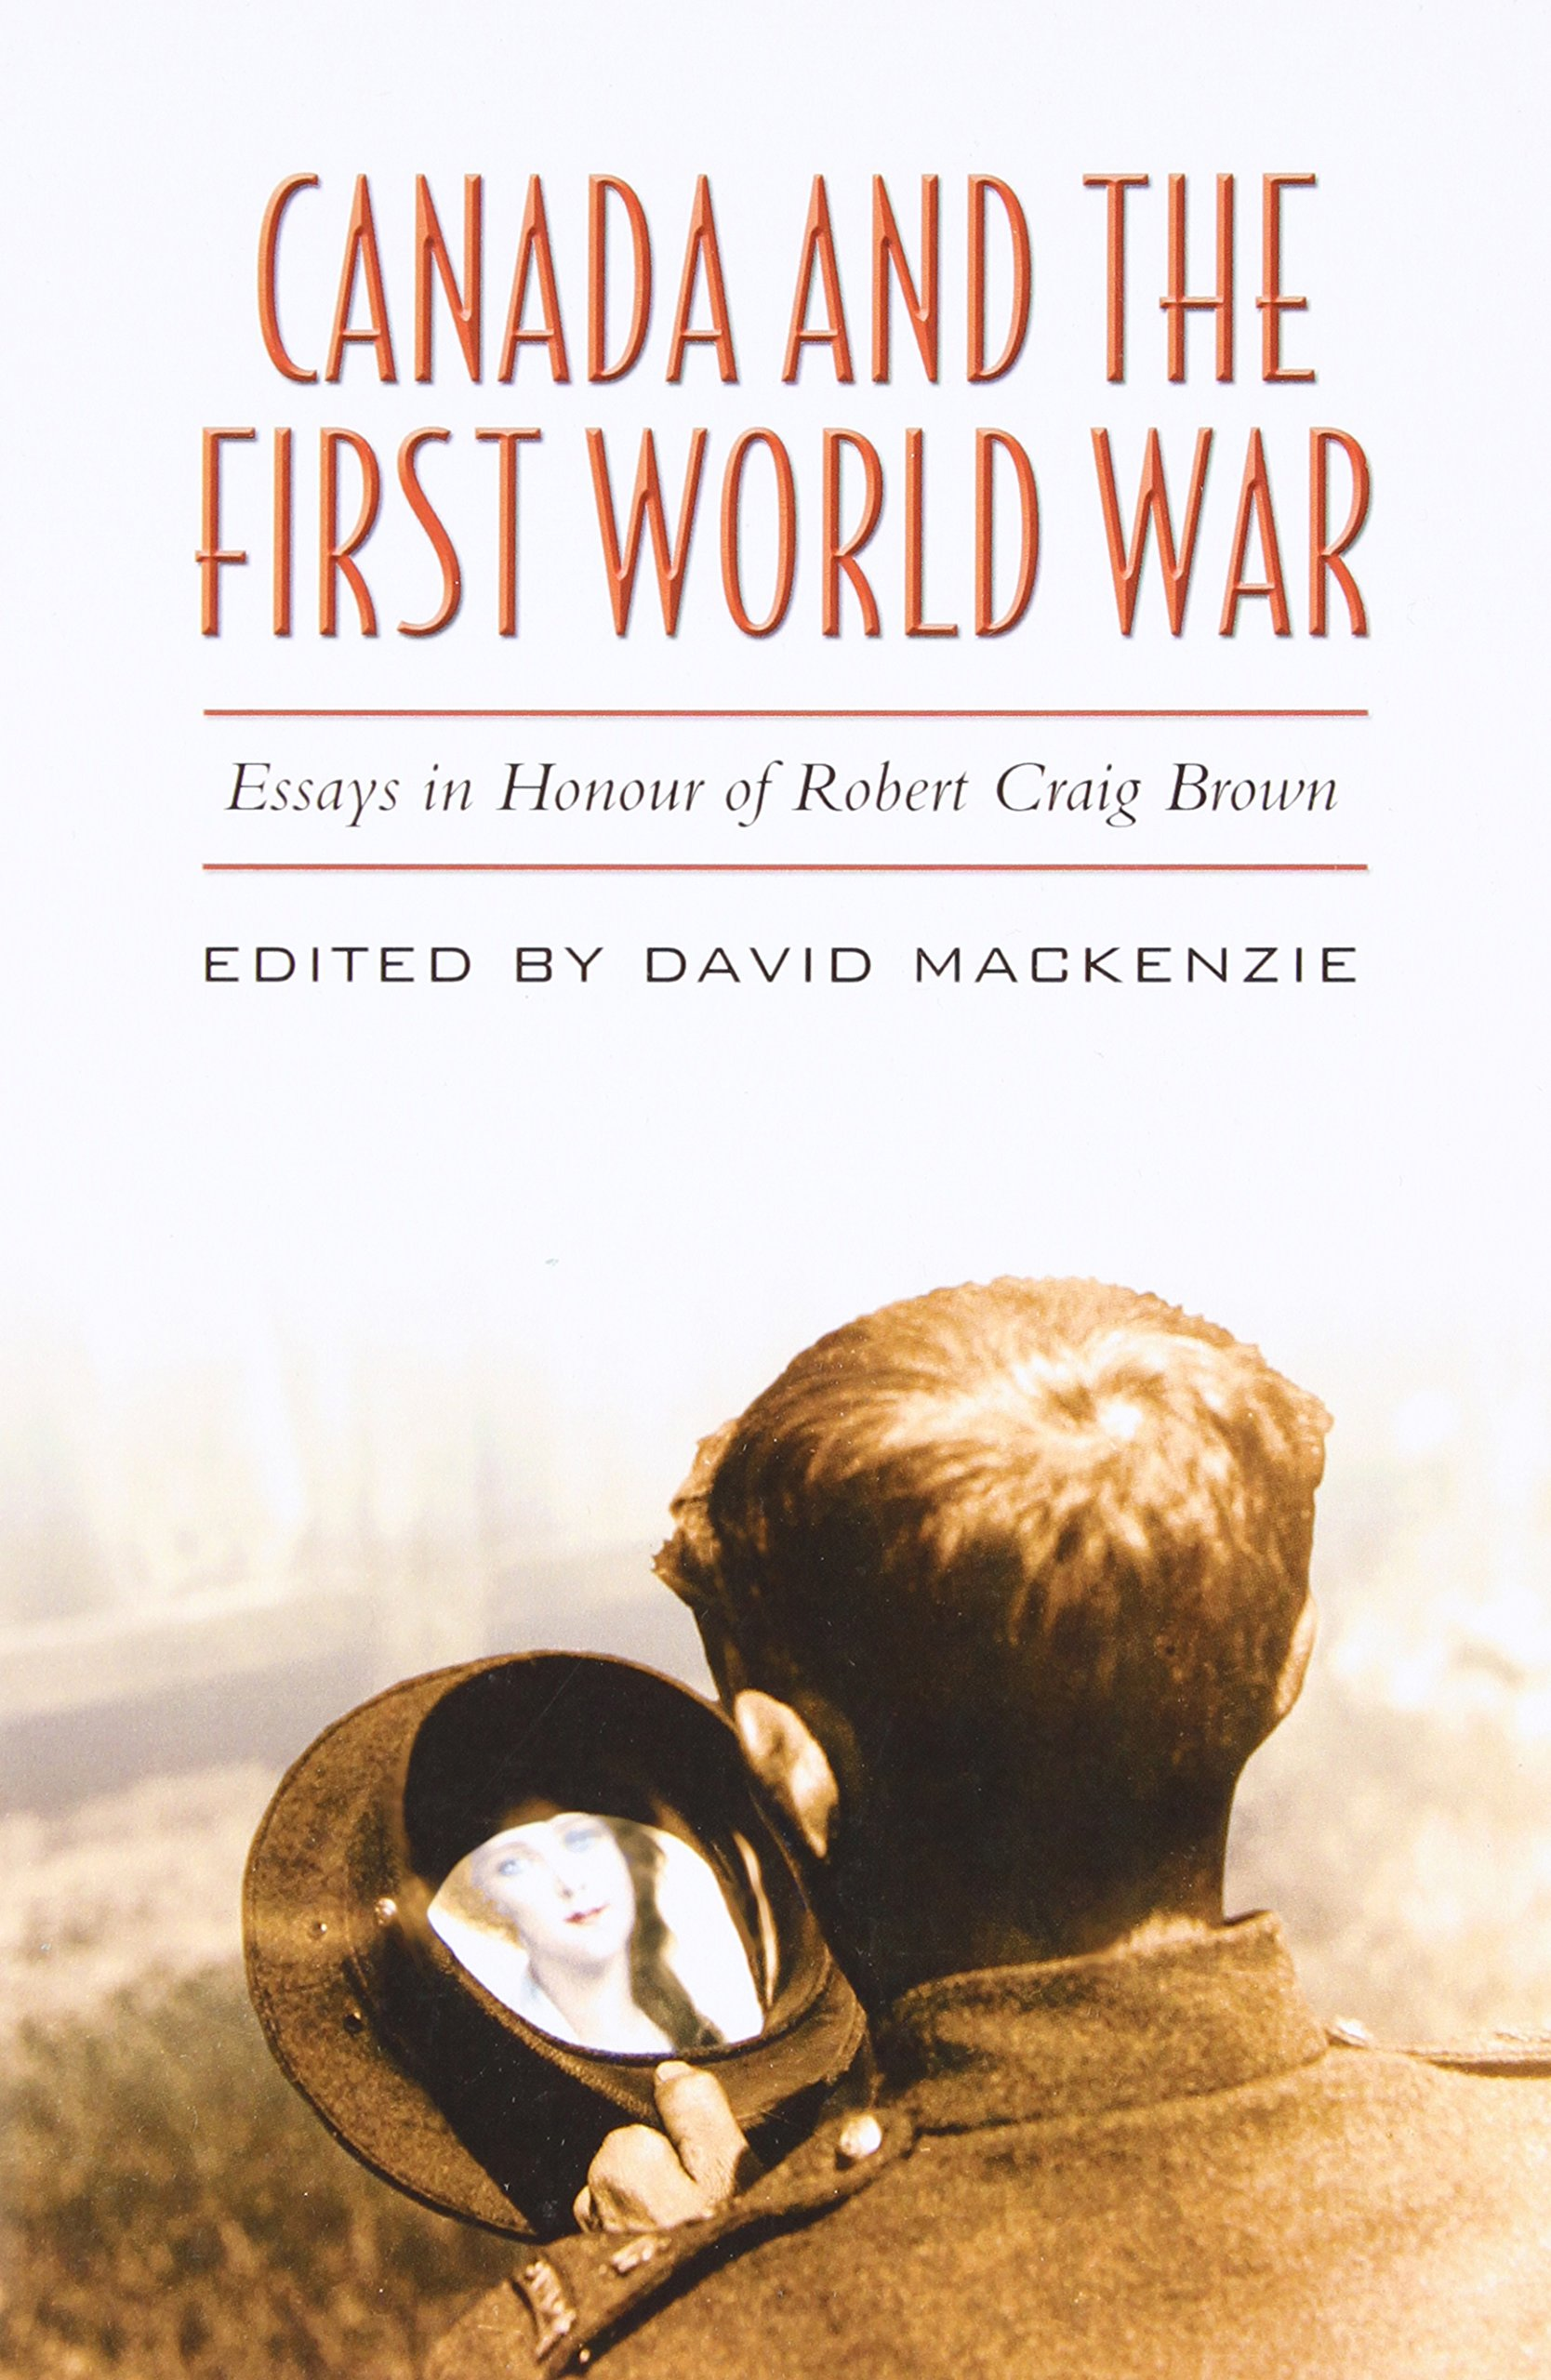 and the first world war essays in honour of robert craig   and the first world war essays in honour of robert craig brown david mackenzie 9780802084453 books ca